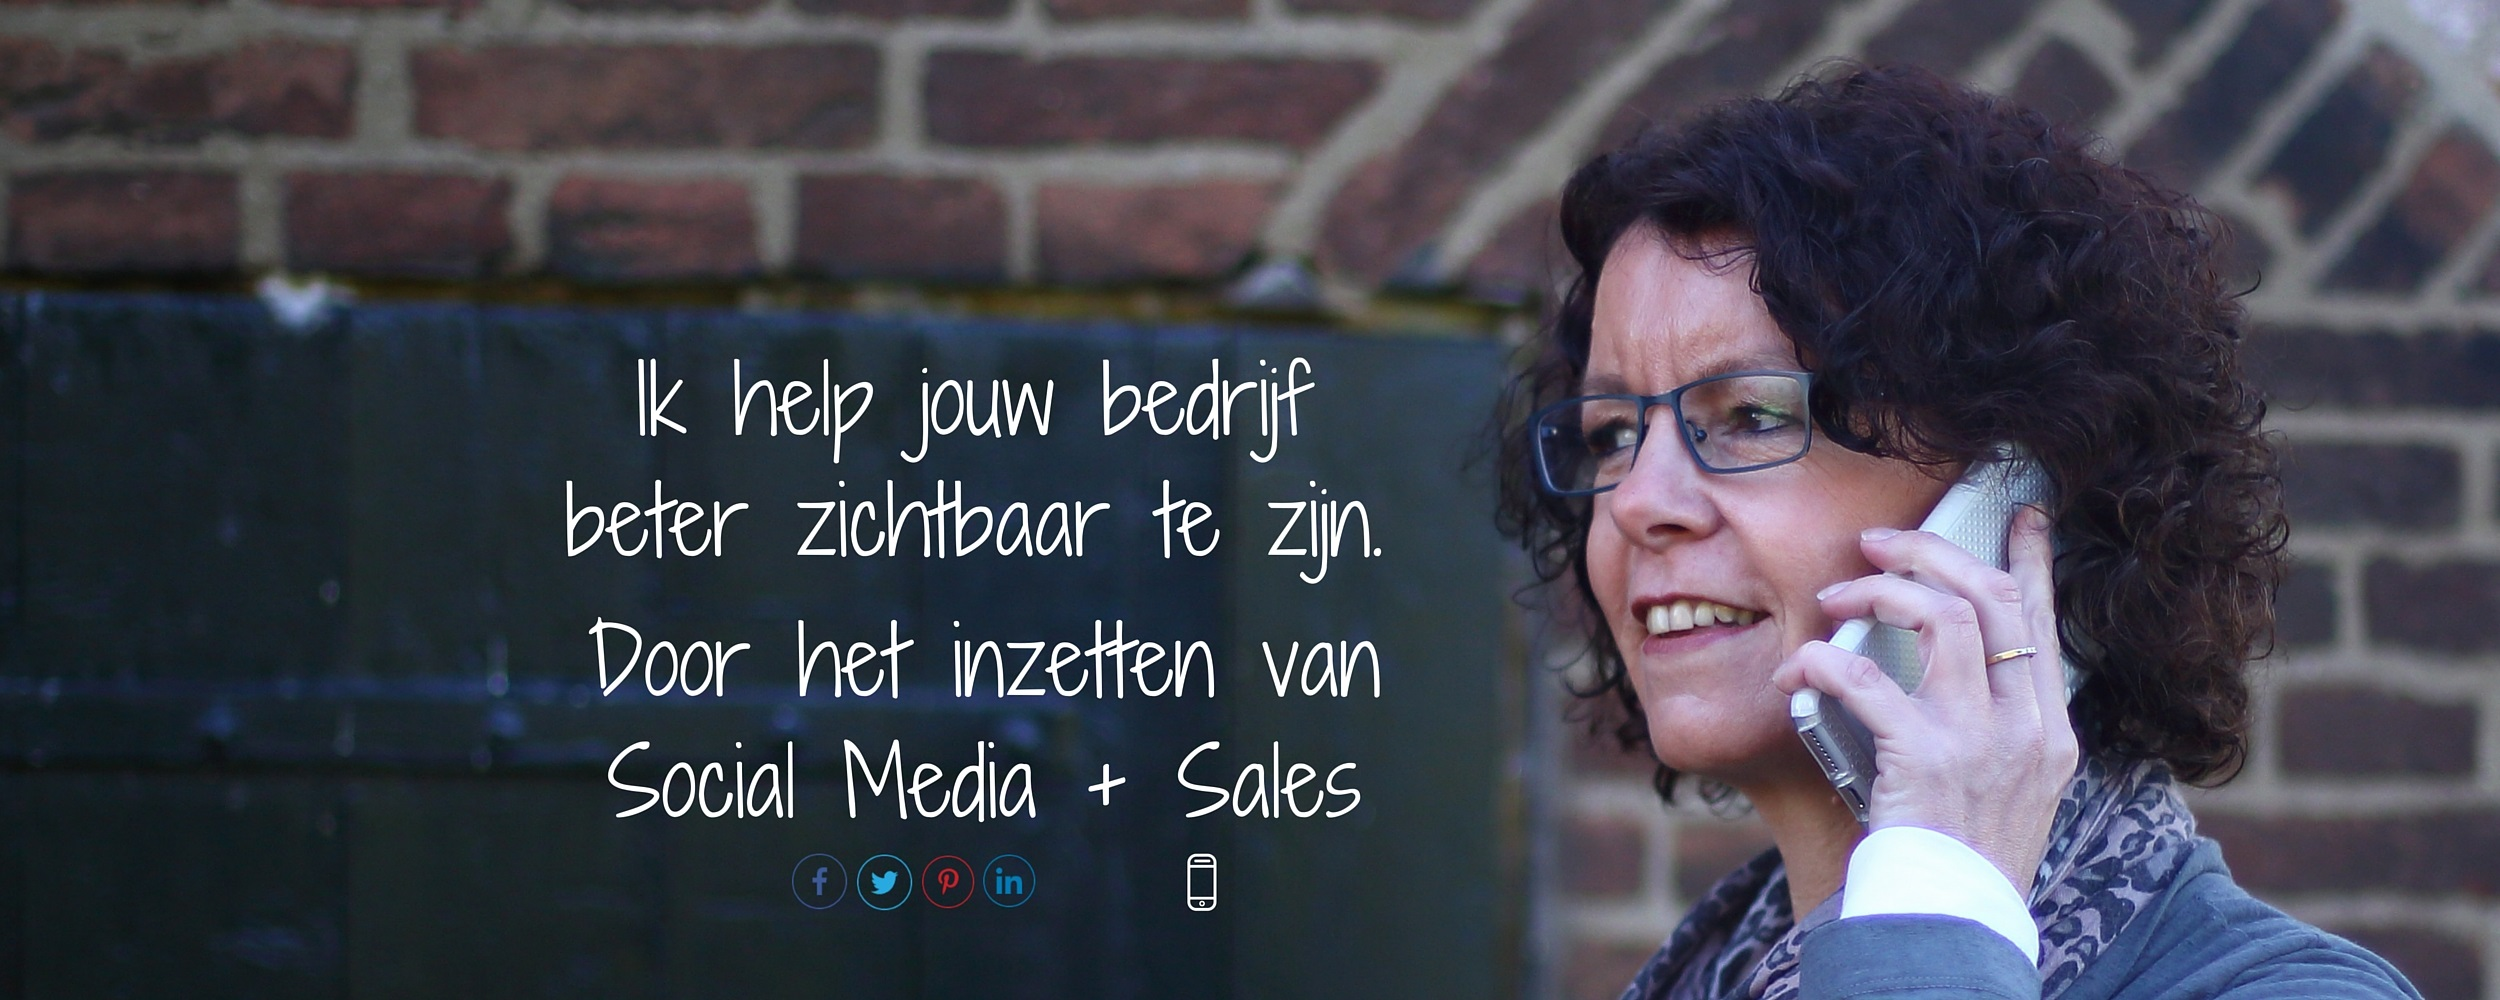 Linking Social & Sales, Sales & Social Media advies